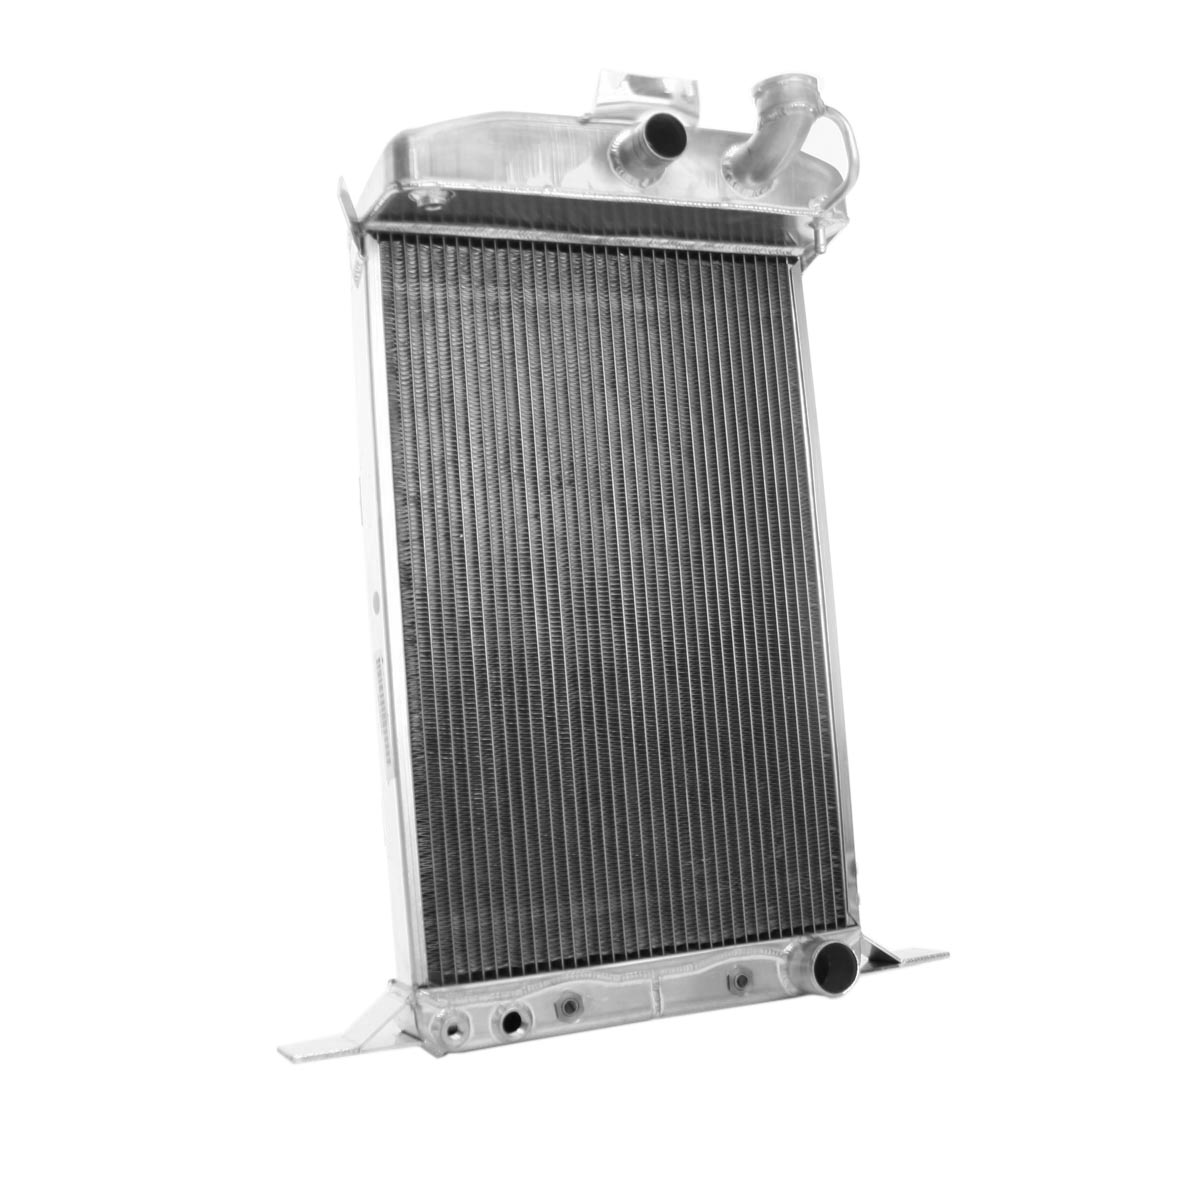 1939 Ford  Griffin Aluminum Radiator - Part Number 7-70086